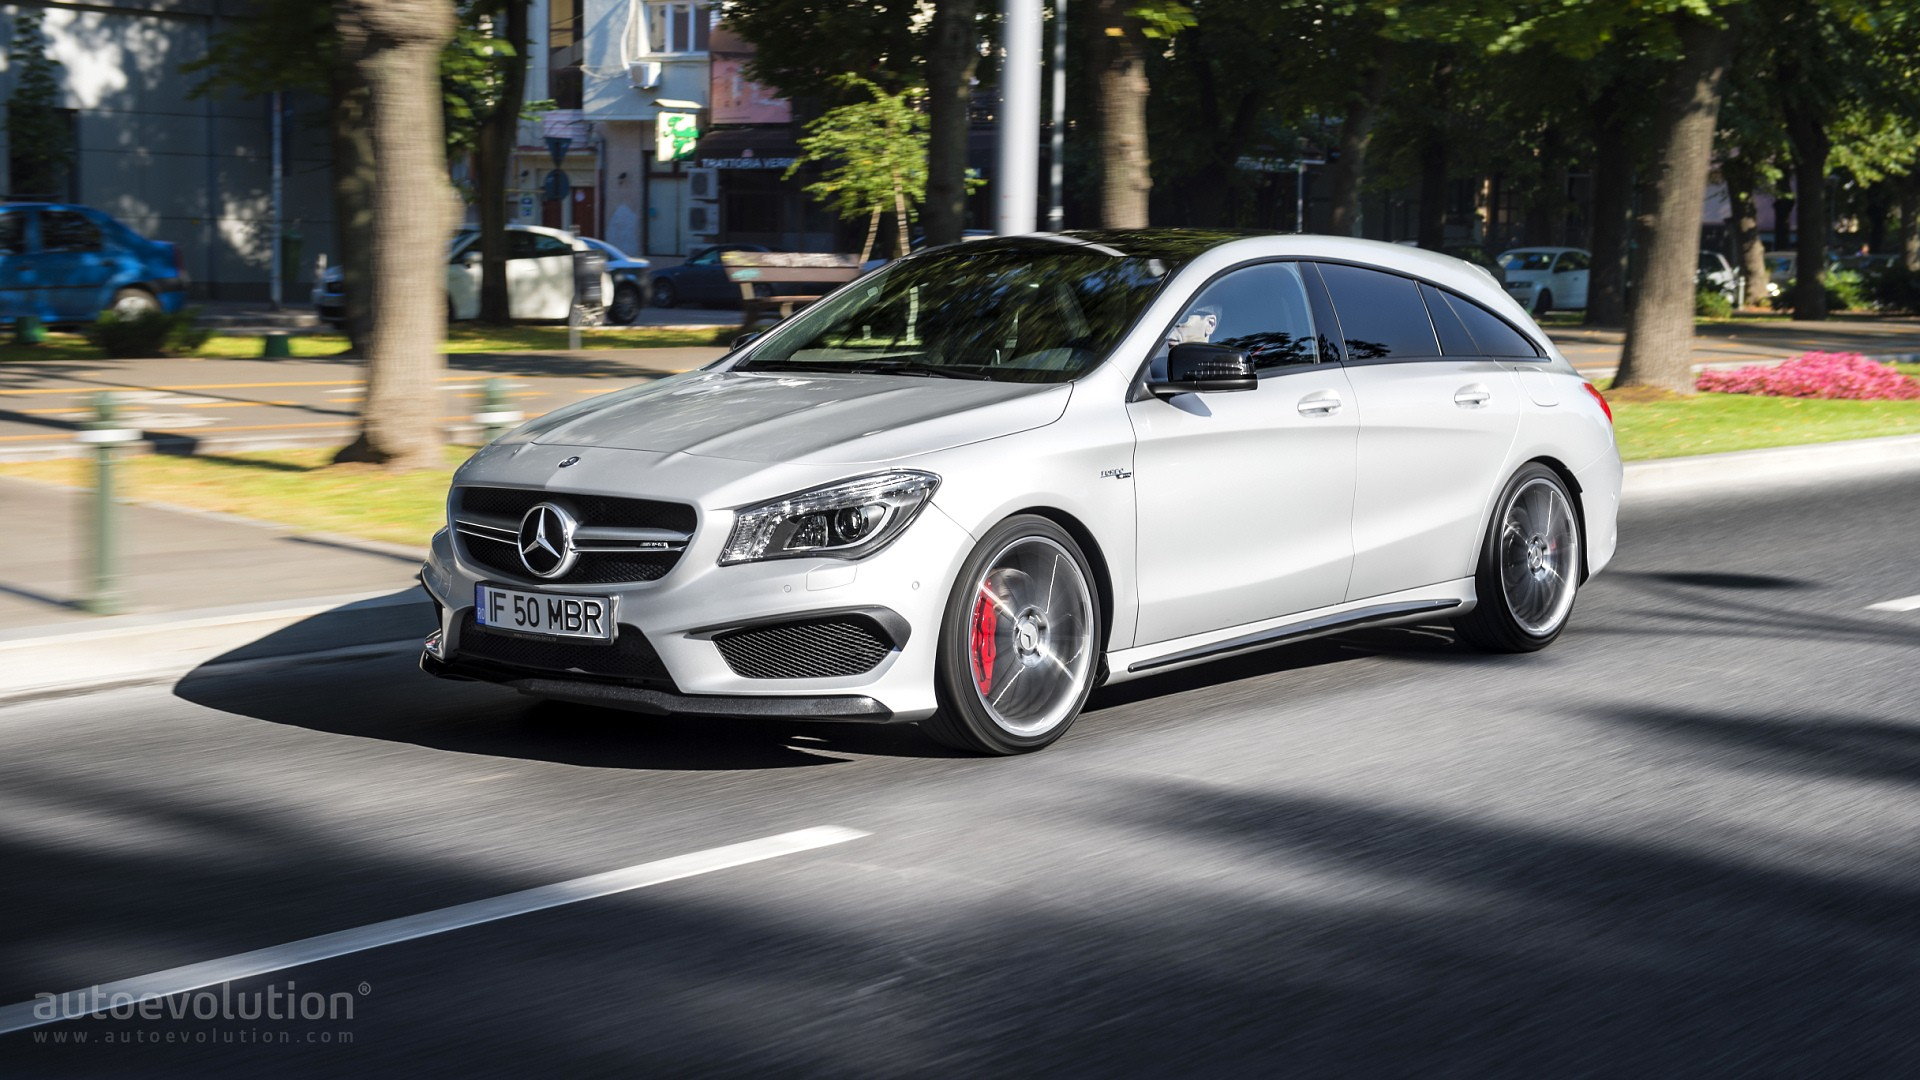 2016 mercedes benz cla45 amg shooting brake hd wallpapers for 2016 mercedes benz cla45 amg